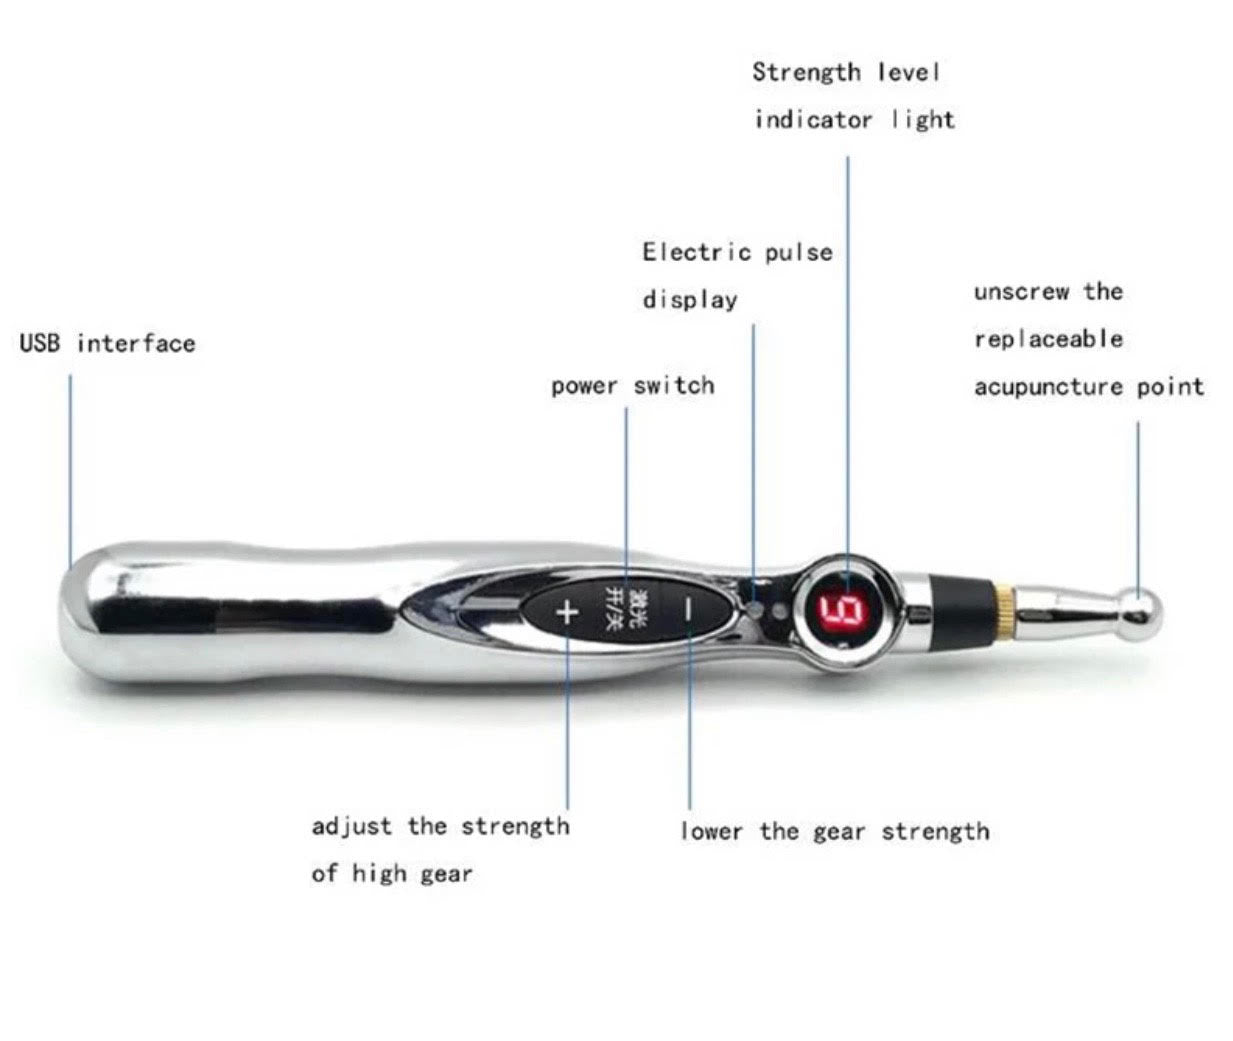 Acupuncture Pen For Acupoint Stimulation & Pain Relief Therapy (AU Stock)